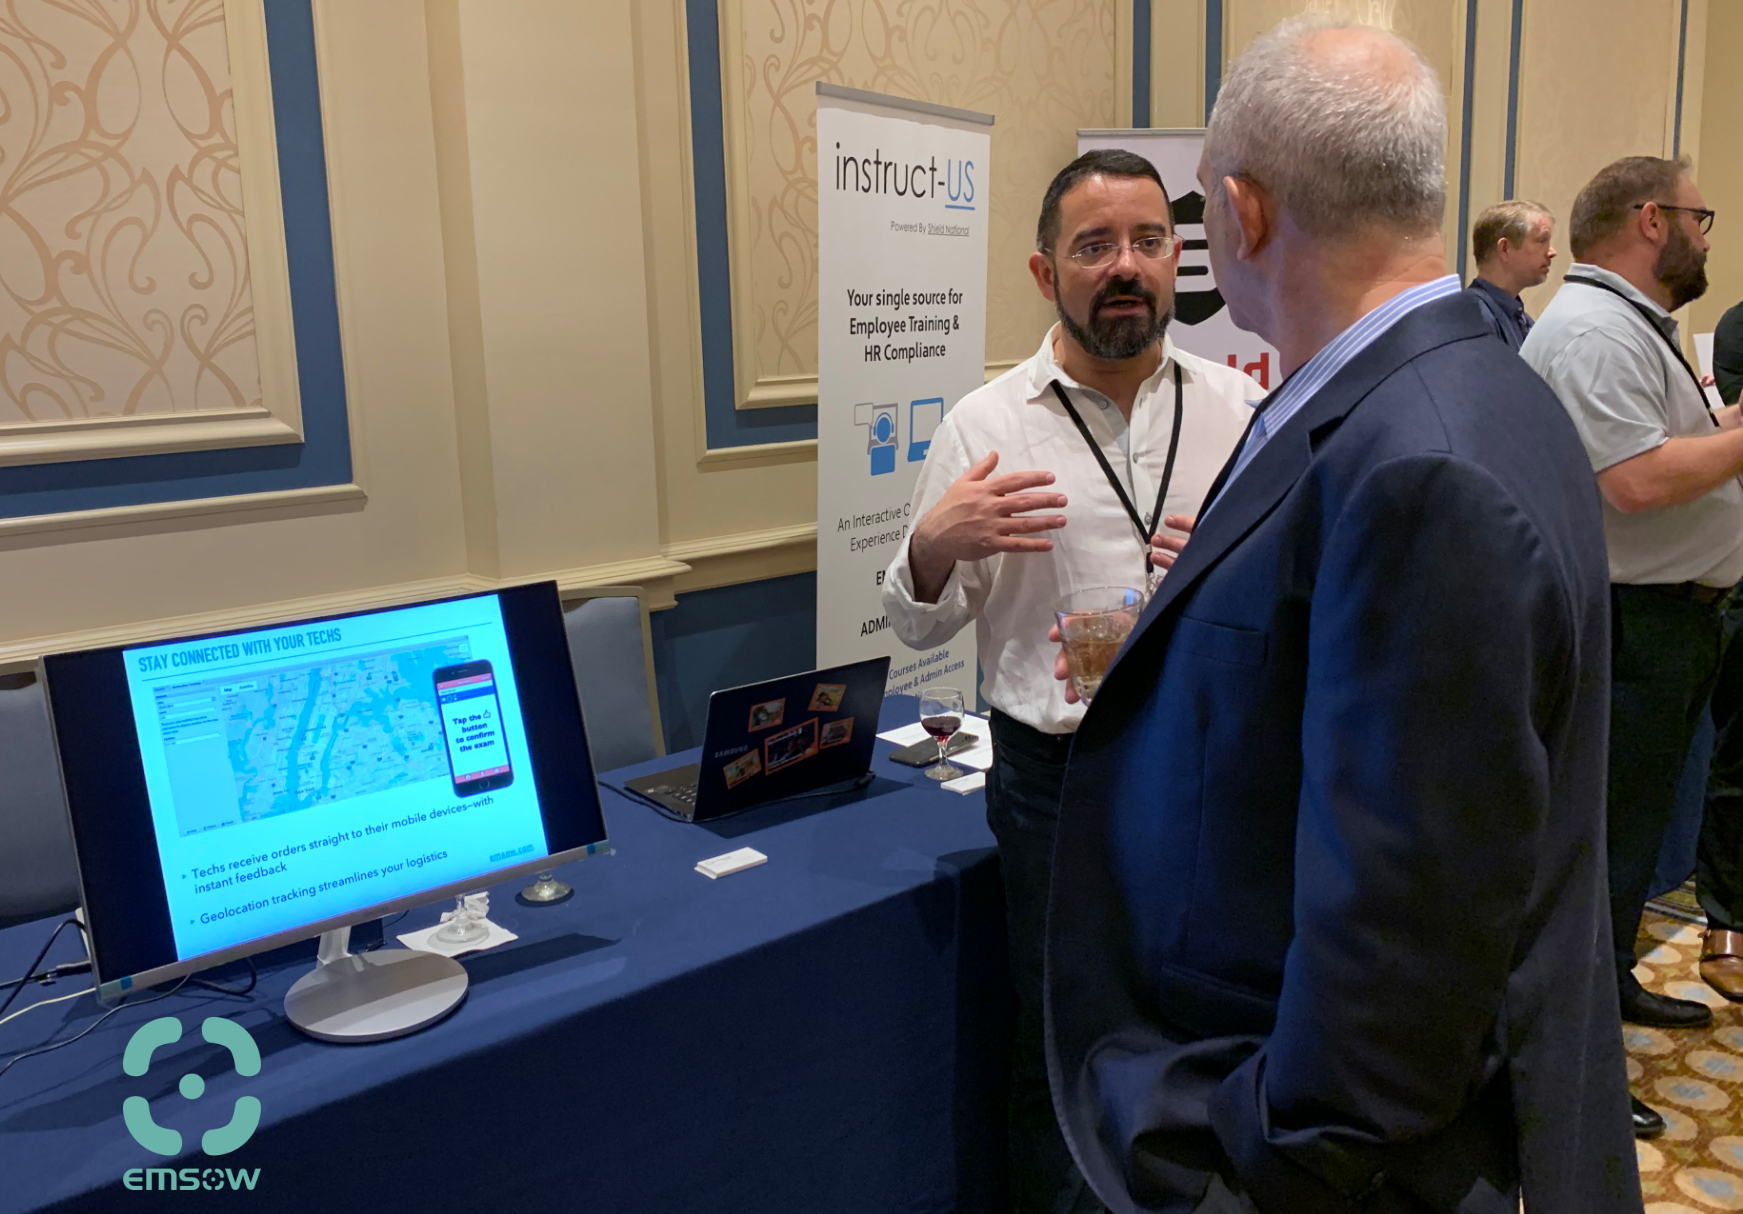 EMSOW at UPDA 2019